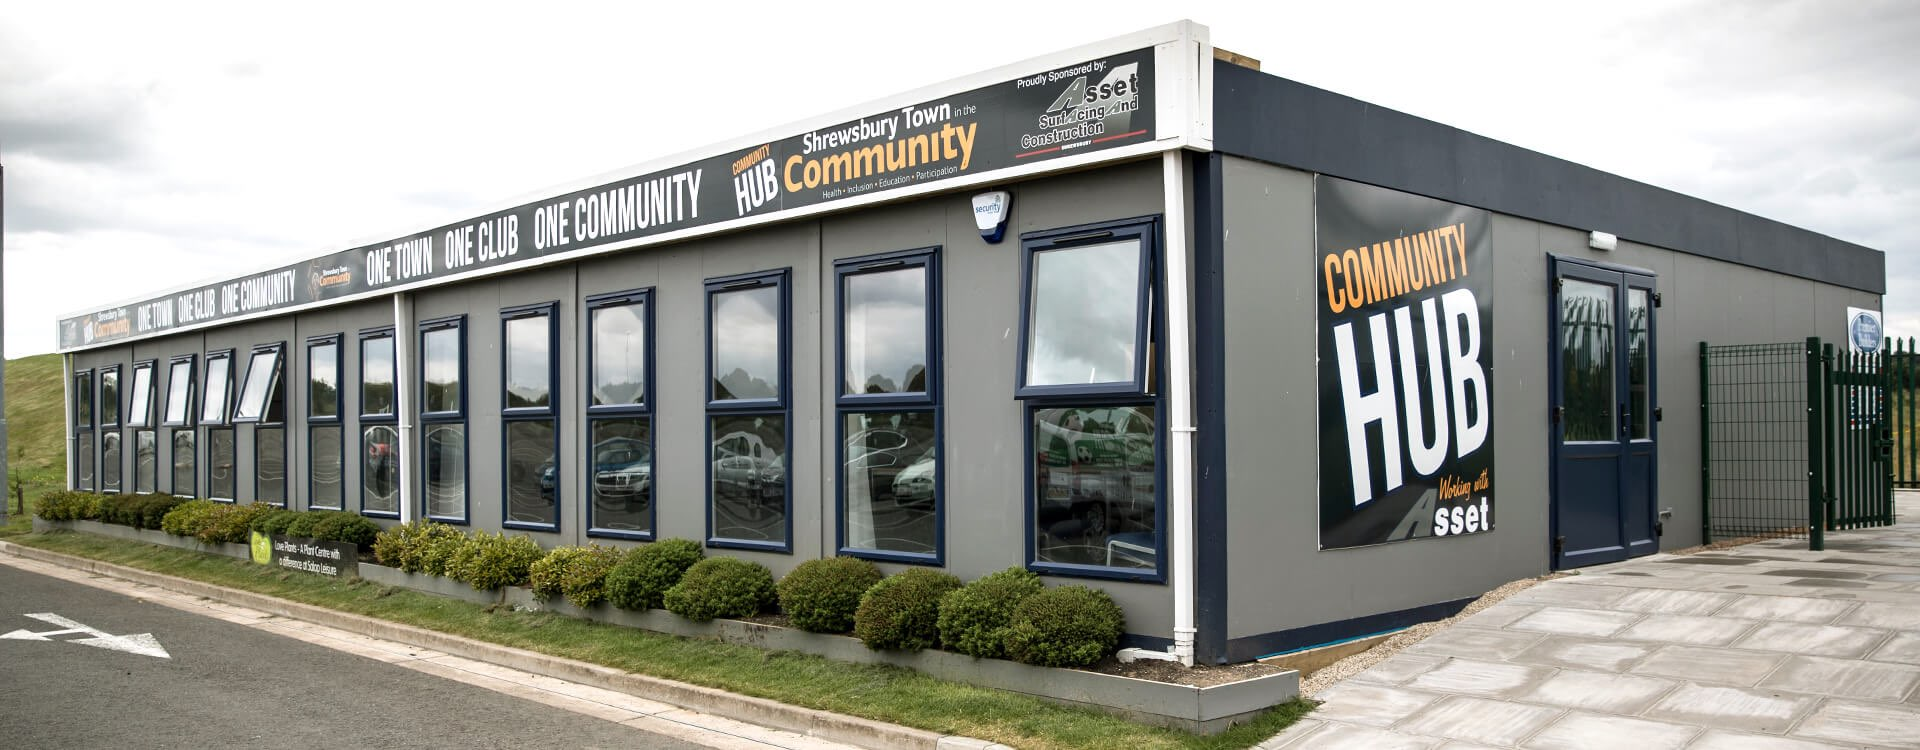 Shrewsbury Town in the Community, function room to hire